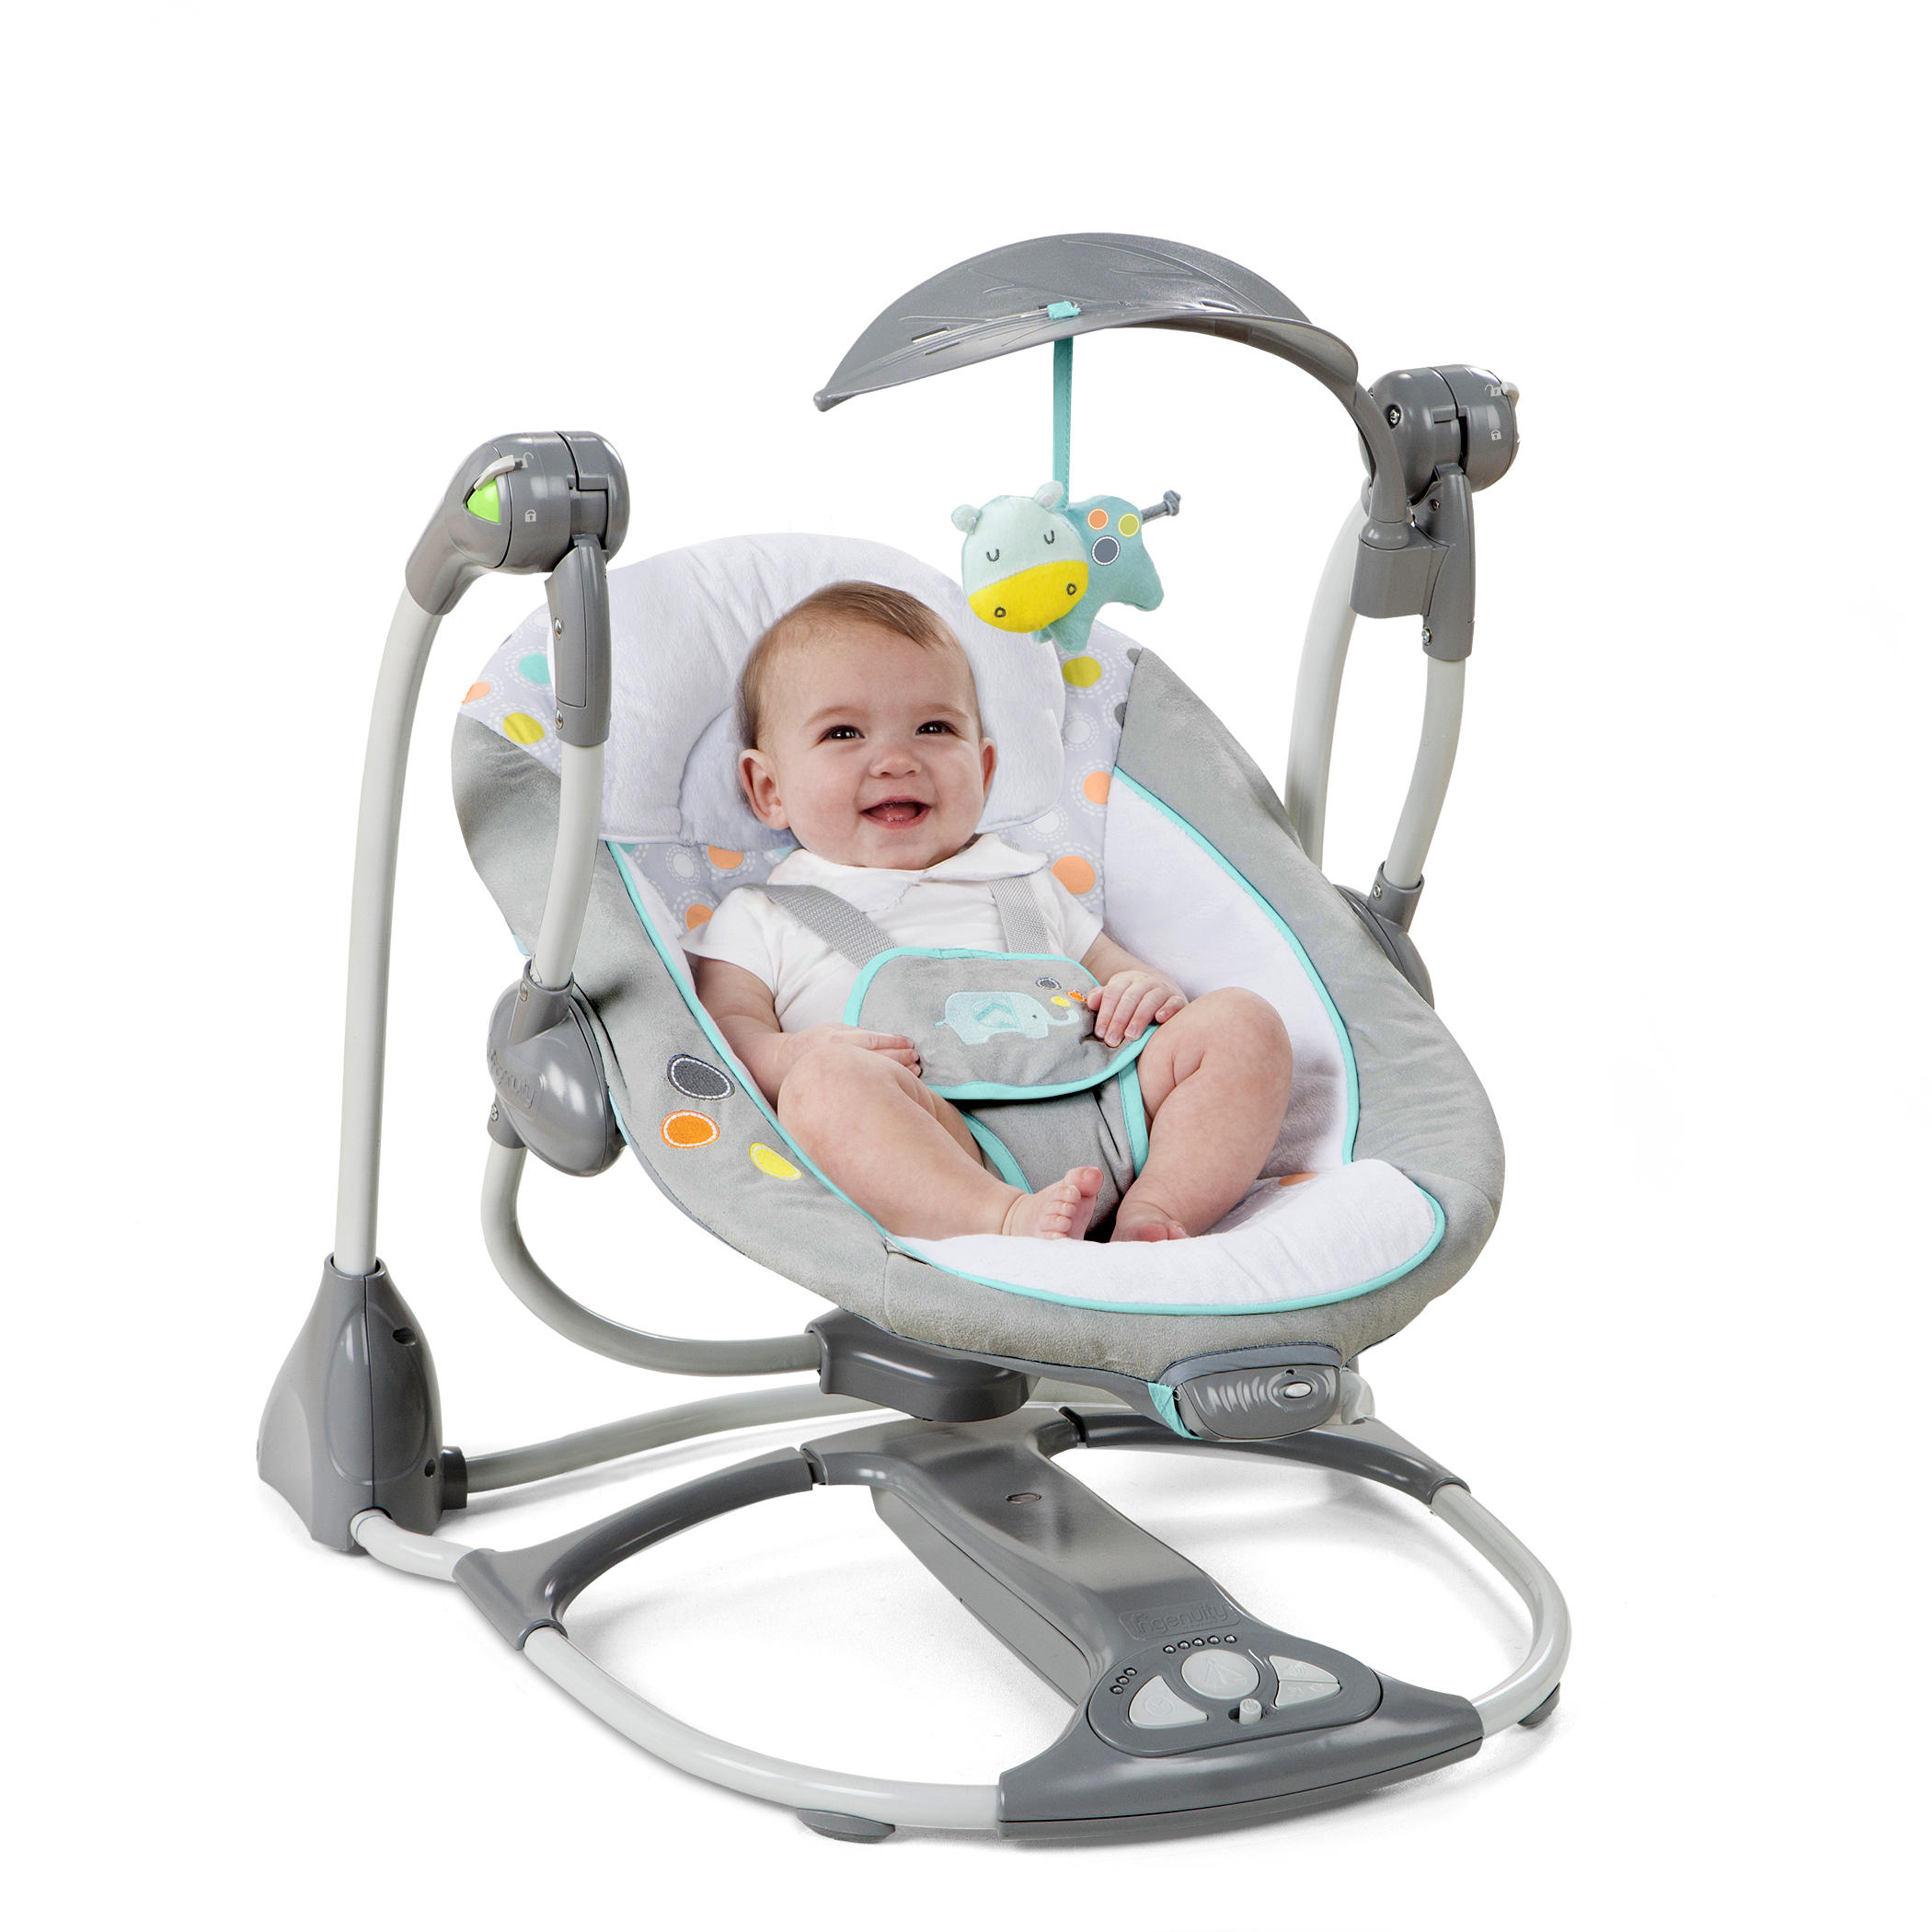 ConvertMe Swing-2-Seat™ Portable Swing - Avondale™